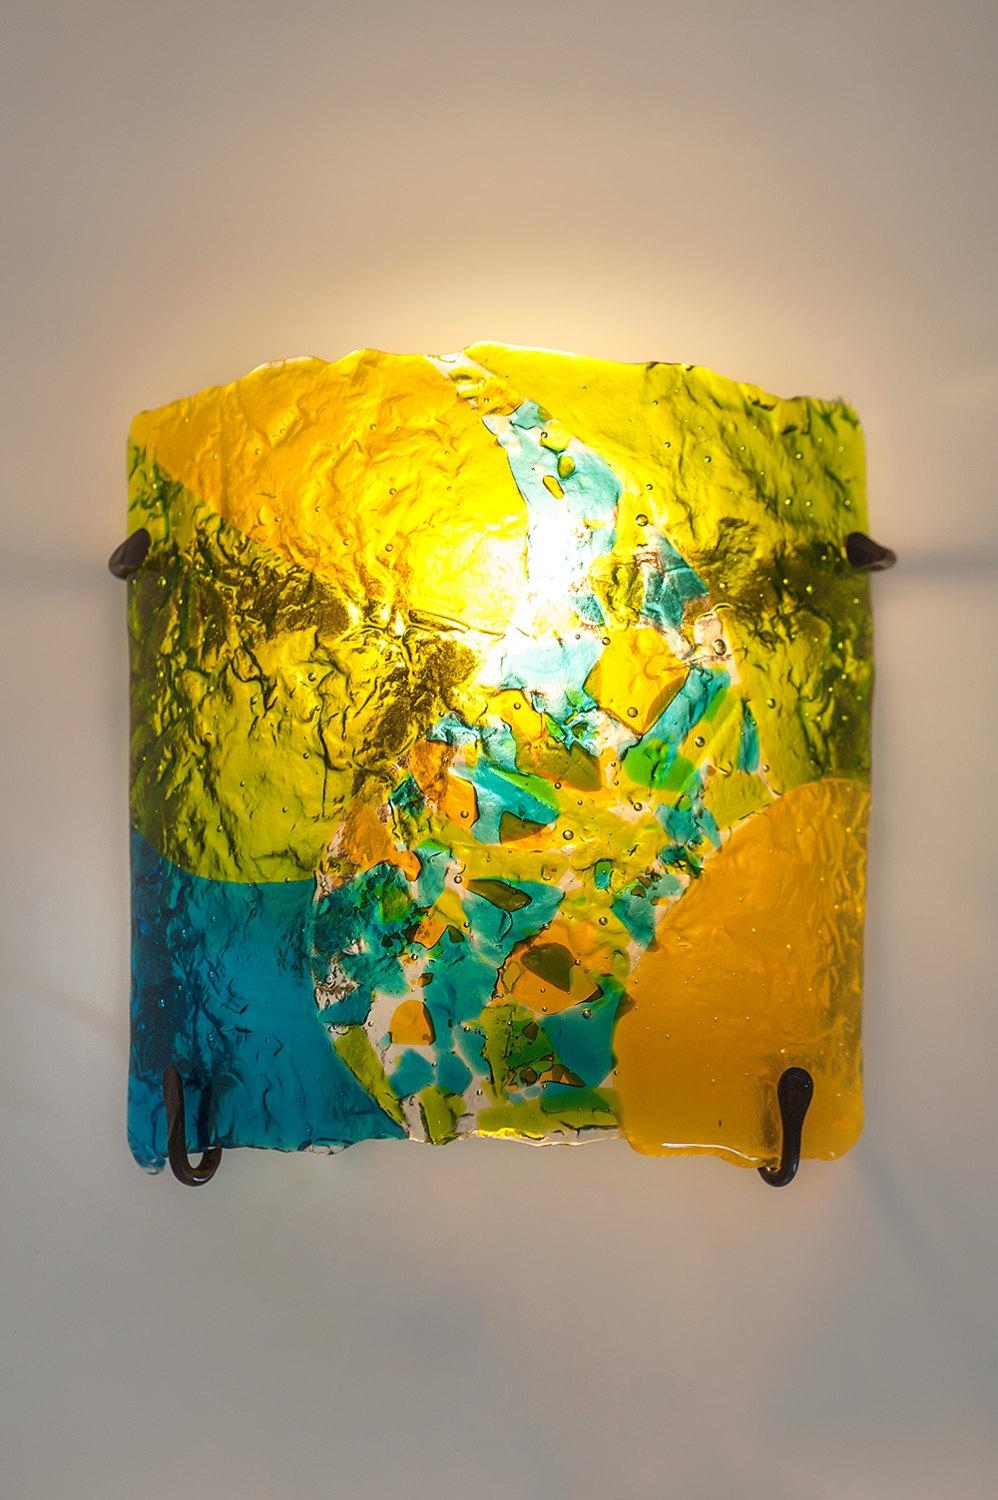 Wall Art Ideas: Fused Glass and Metal Wall Art (Explore #13 of 20 ...